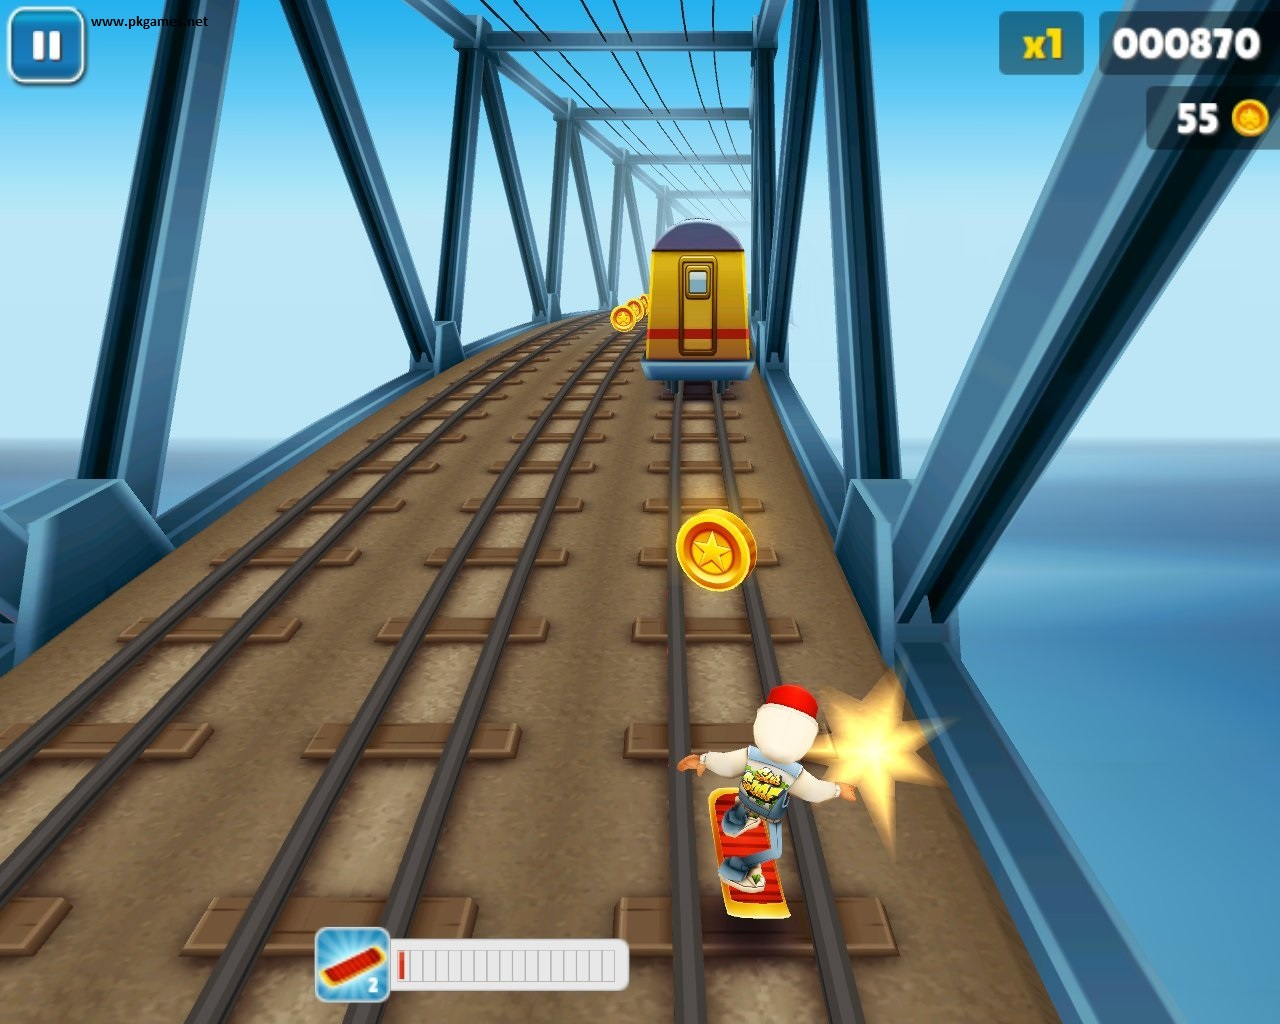 TO AIRPLANE MODE AND SUBWAY SURFERS SHOULD START WITHOUT PROBLEMS